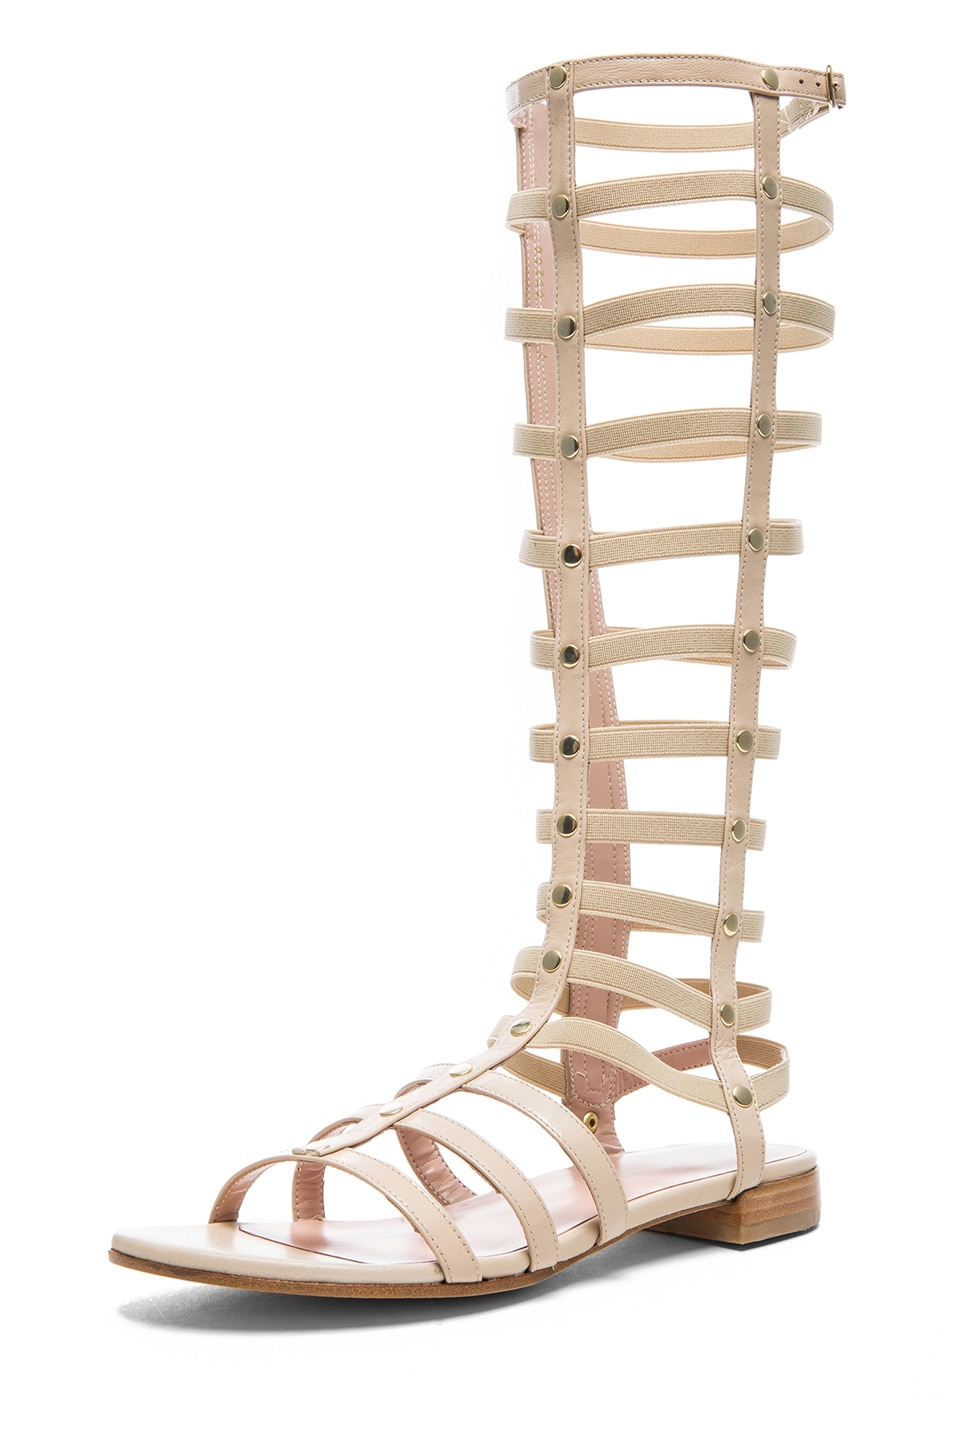 Image 2 of Stuart Weitzman Nappa Leather Gladiator Sandals in Pan